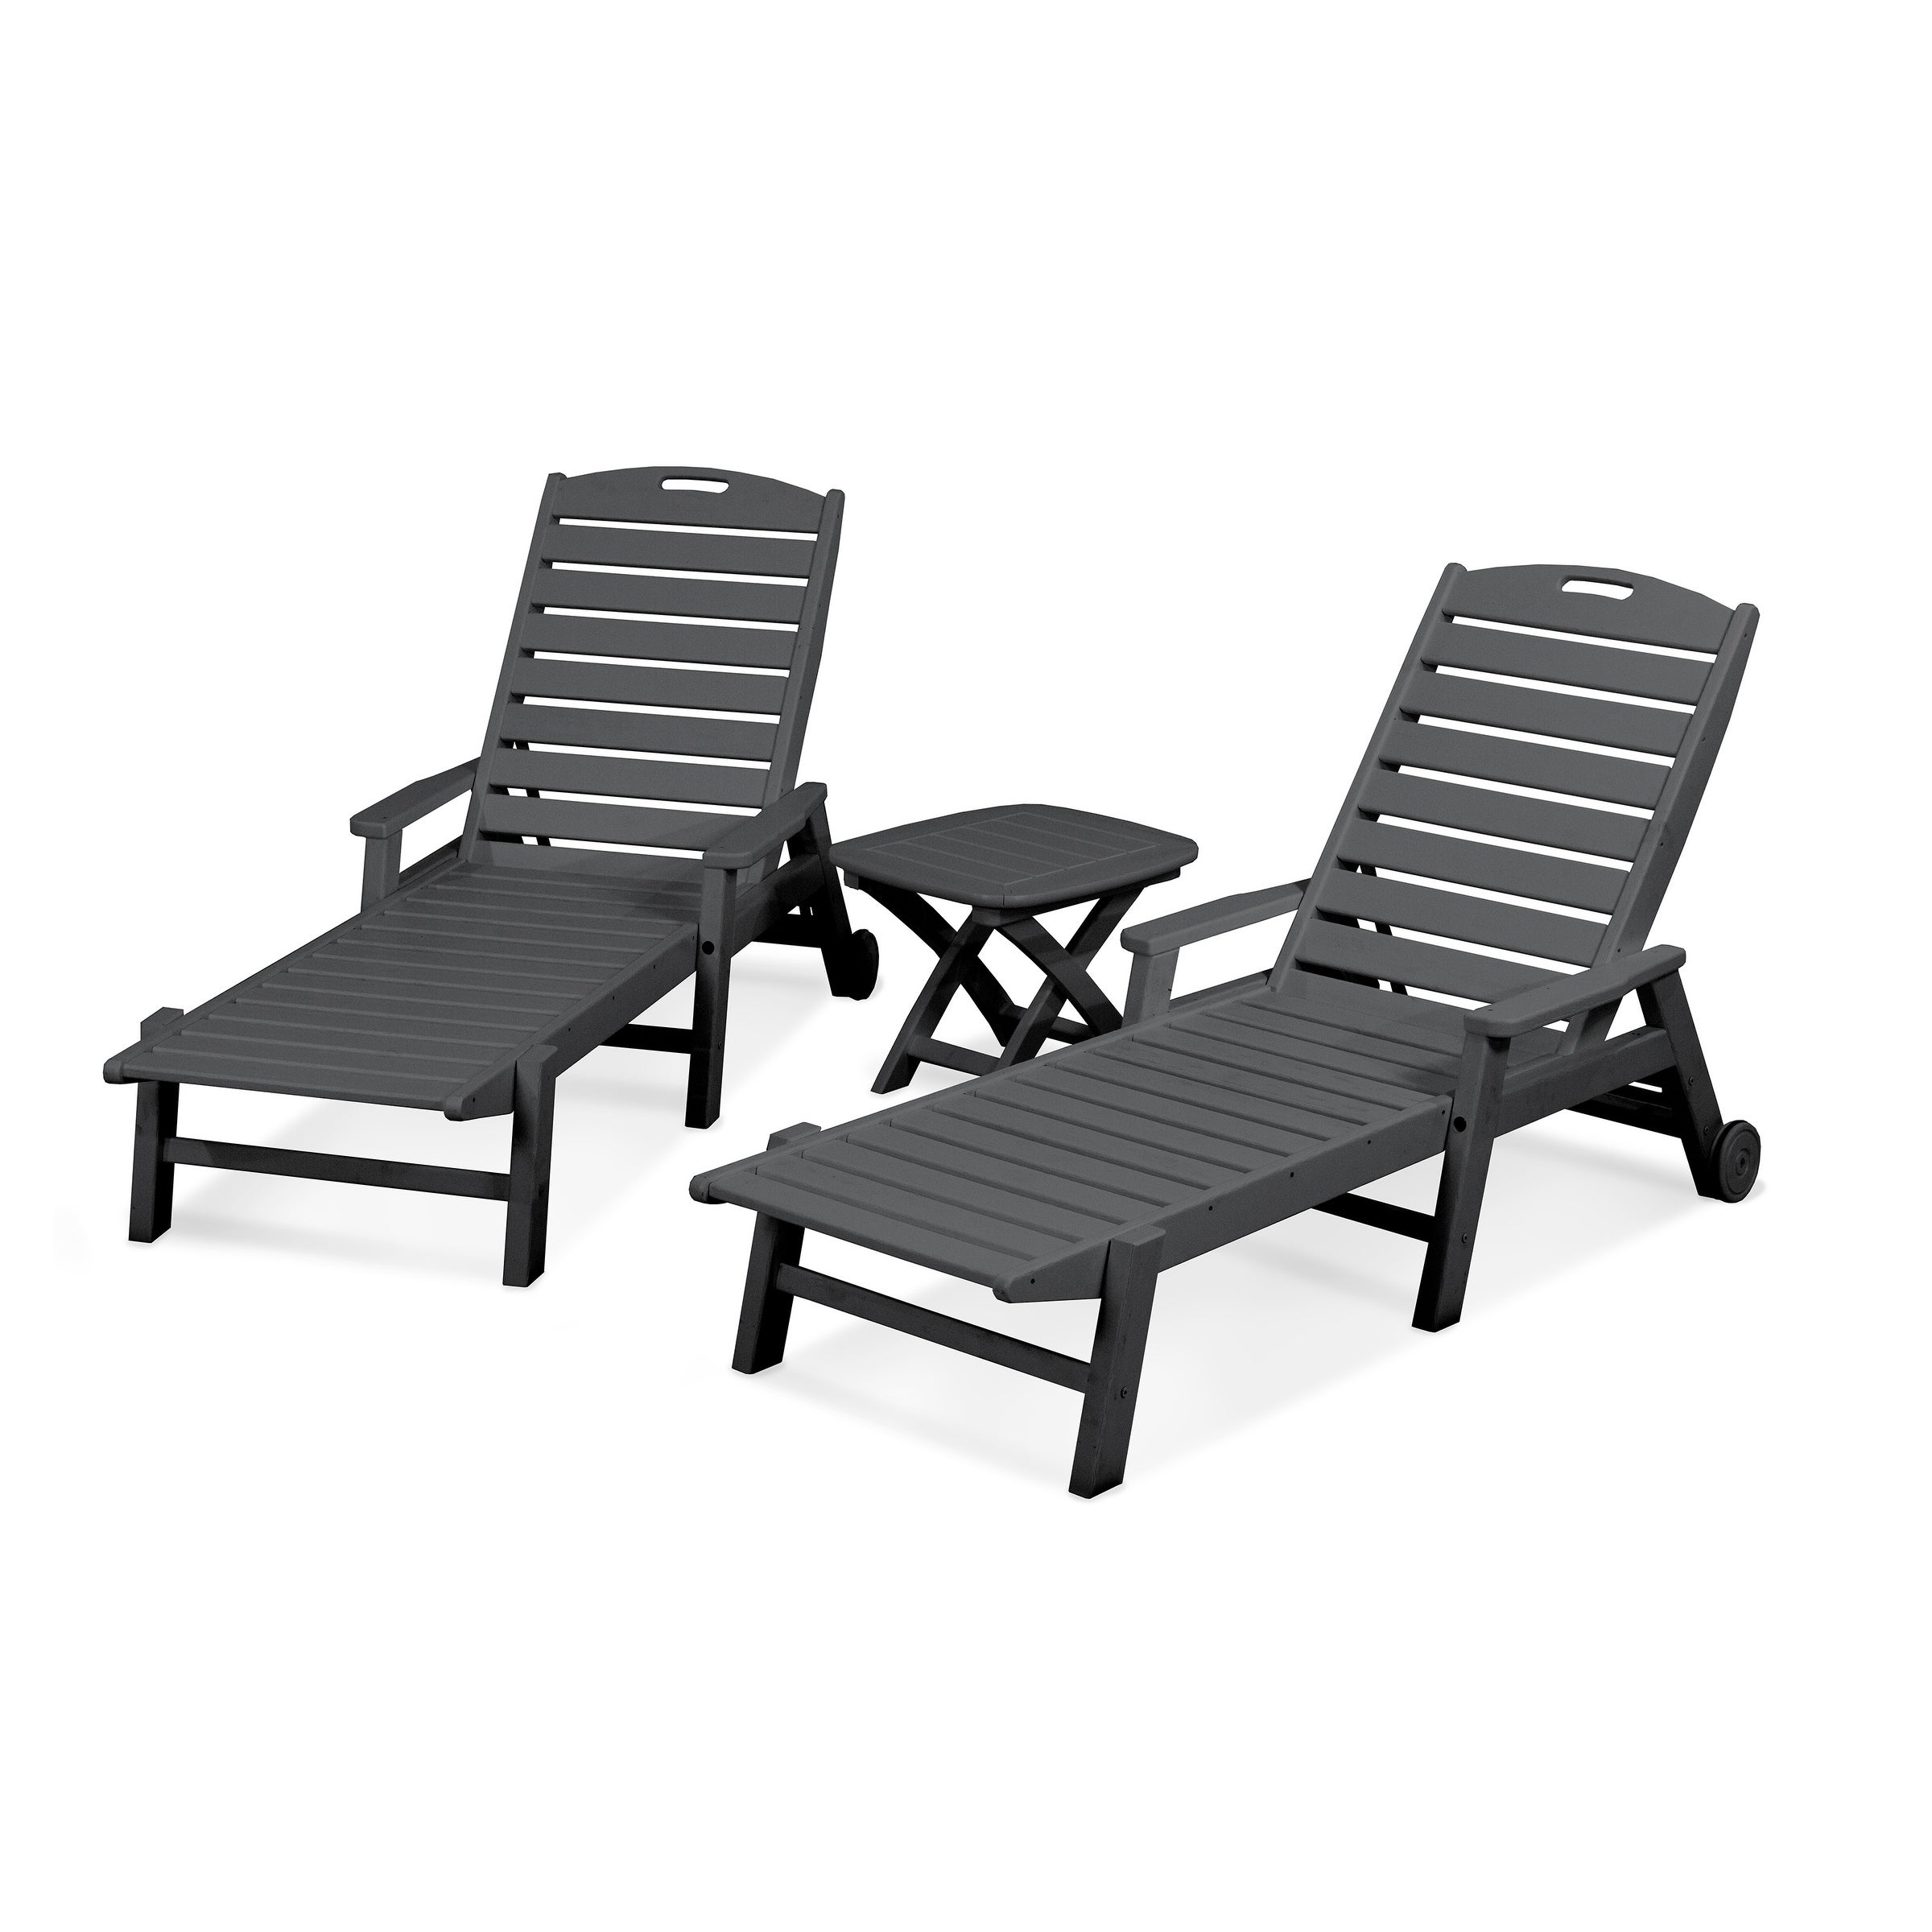 3 Piece Outdoor Chaise Lounge Set